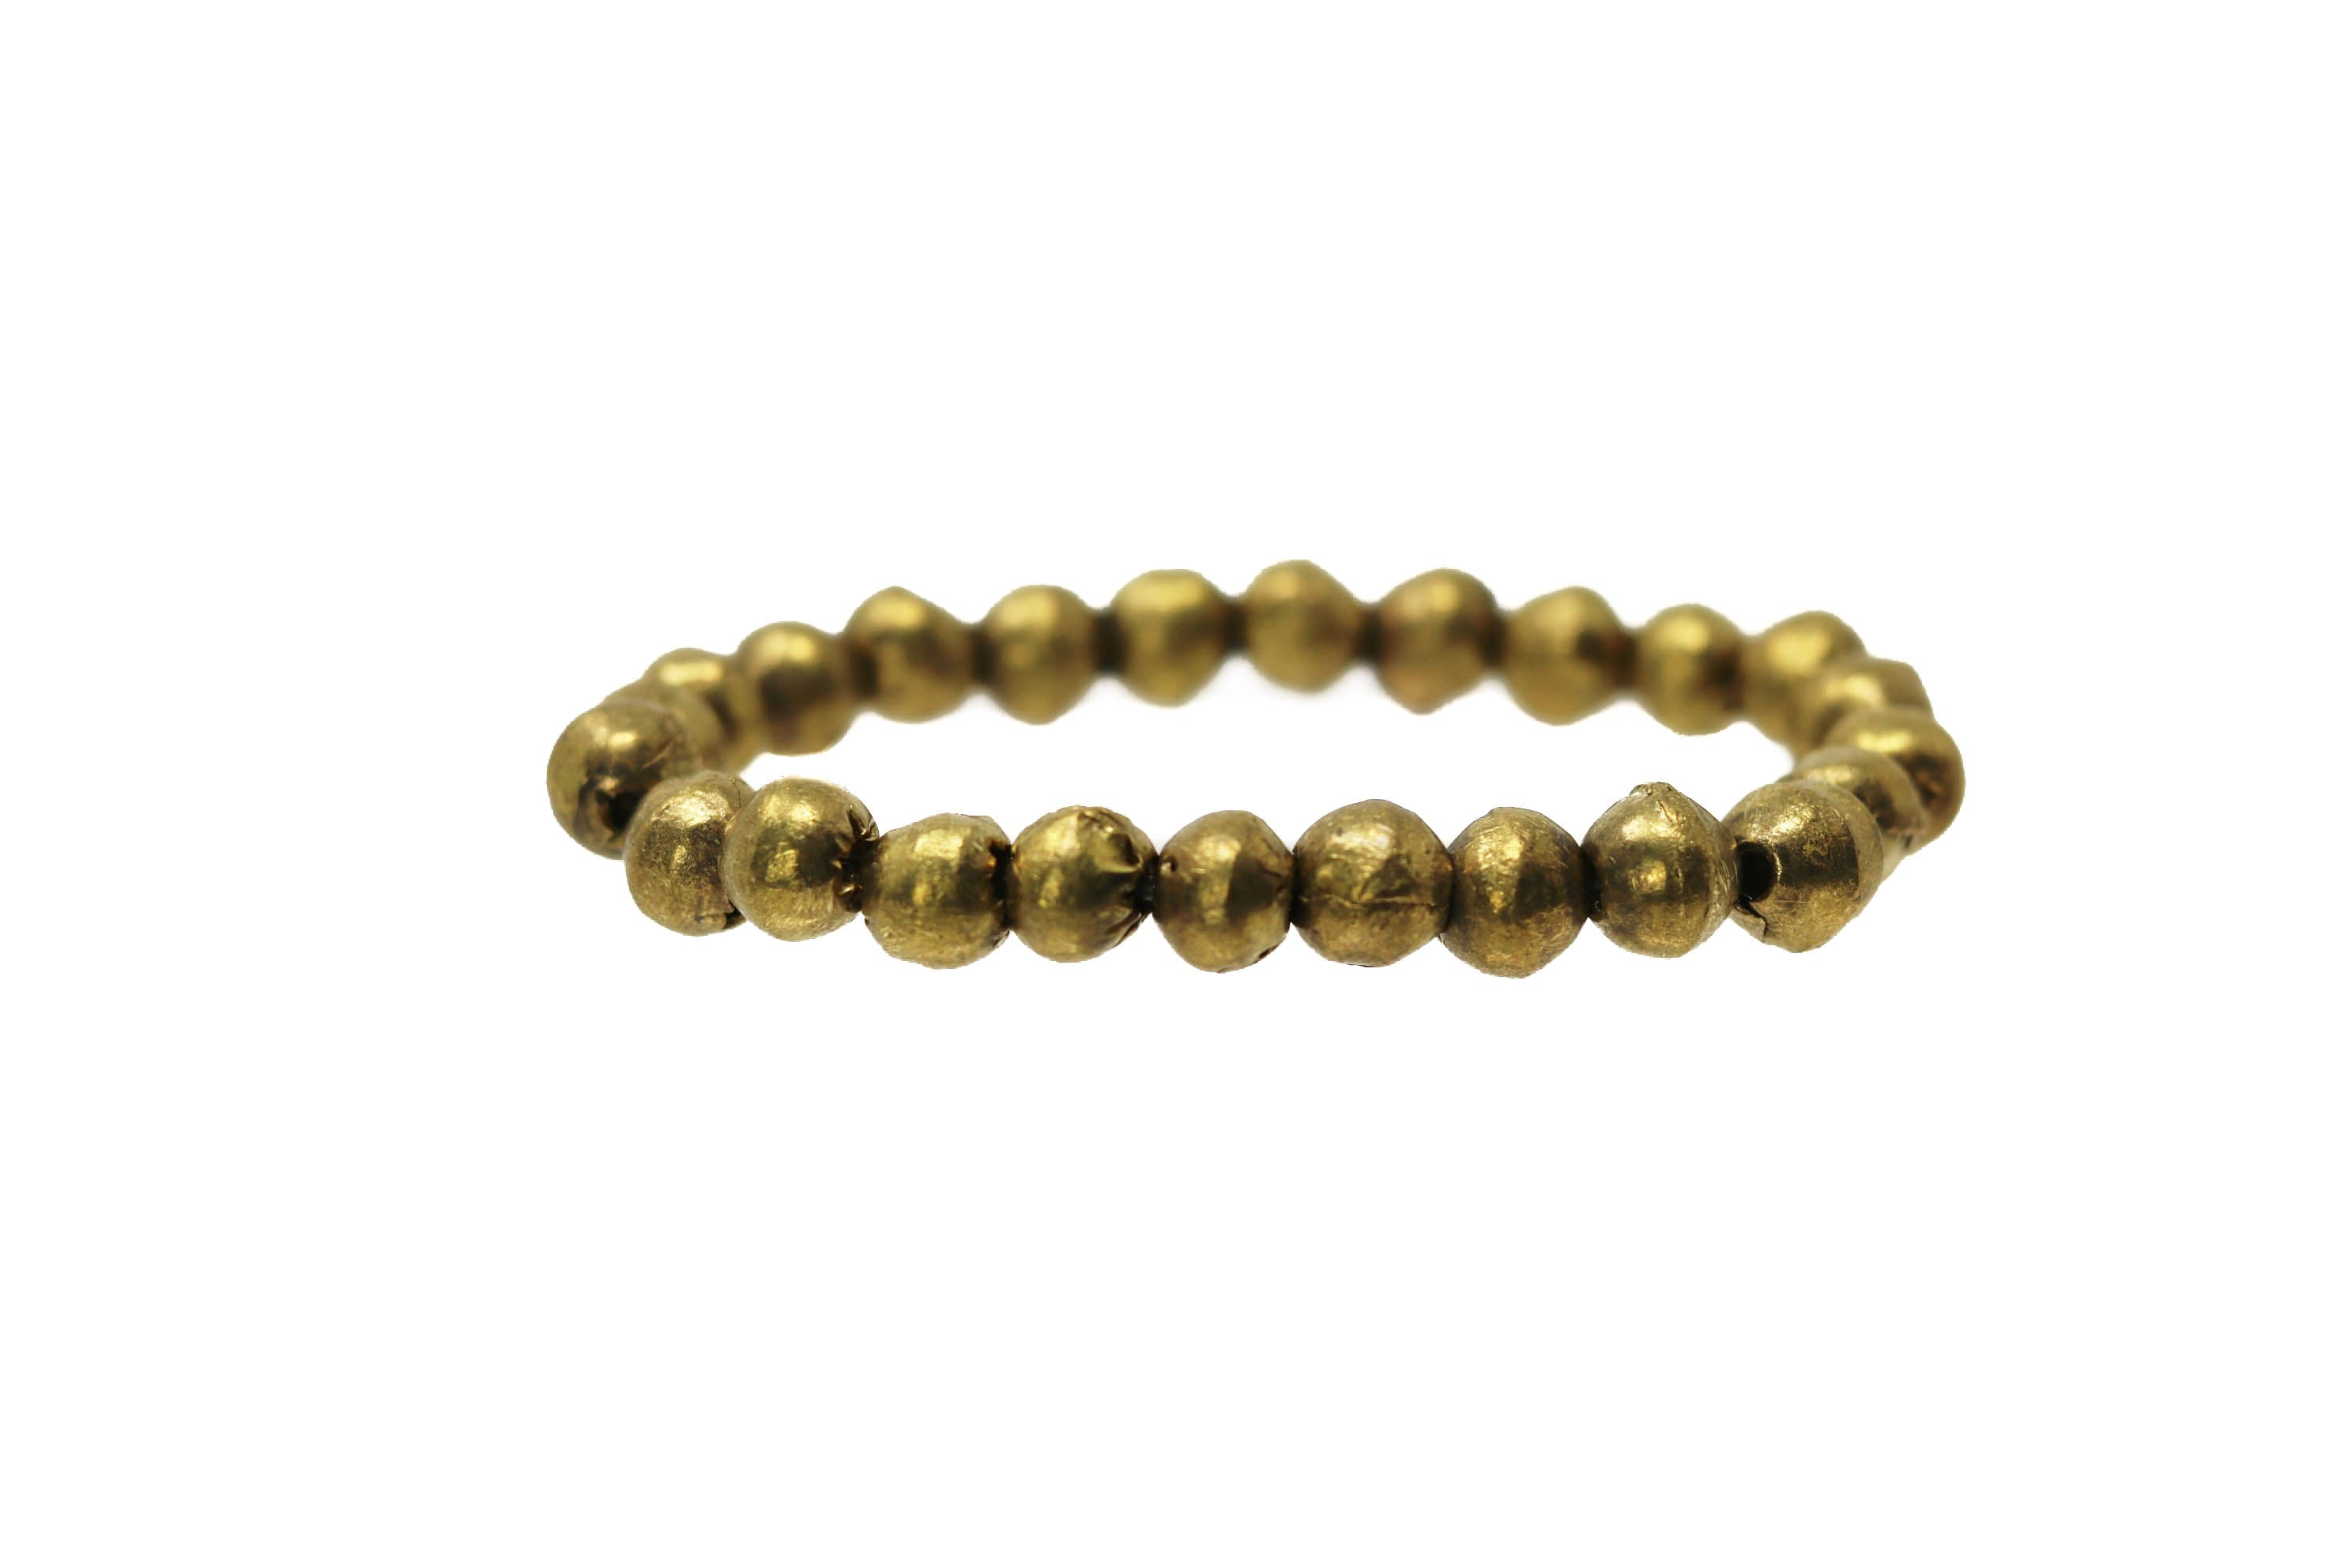 Island Gold Gold Beads